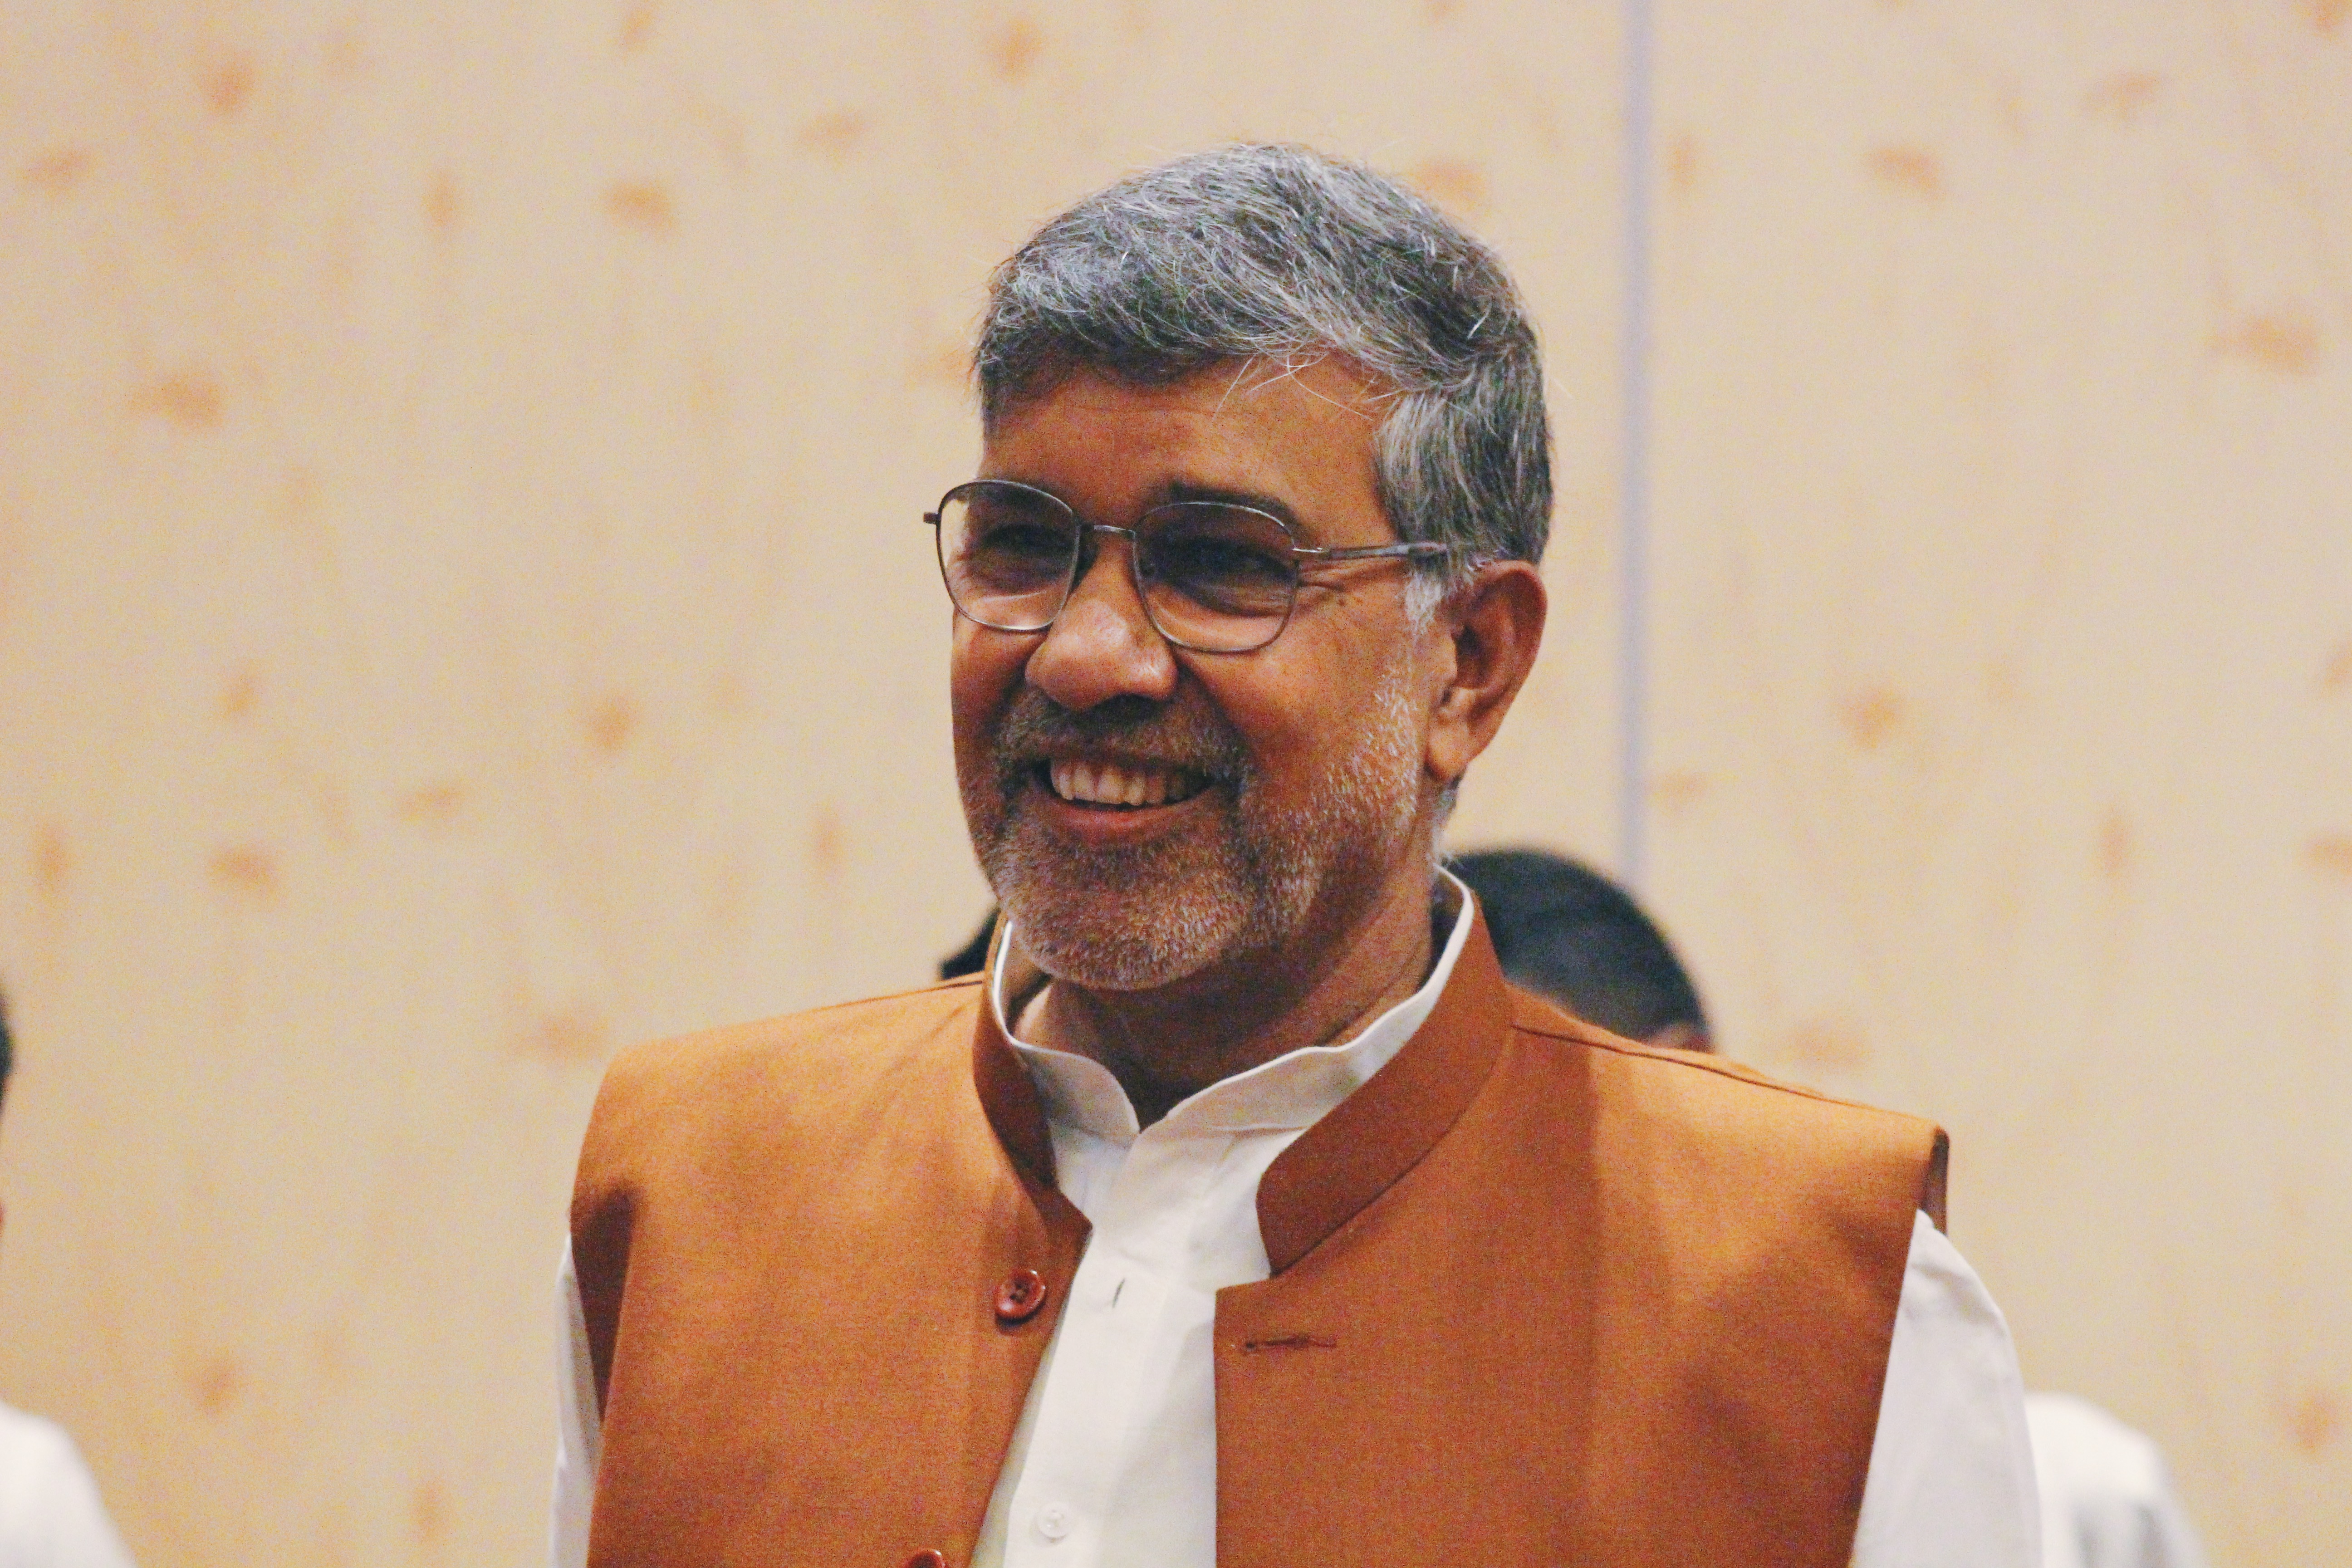 Nobel Laureate Kailash Satyarthi. Photo courtesy: Connected to India